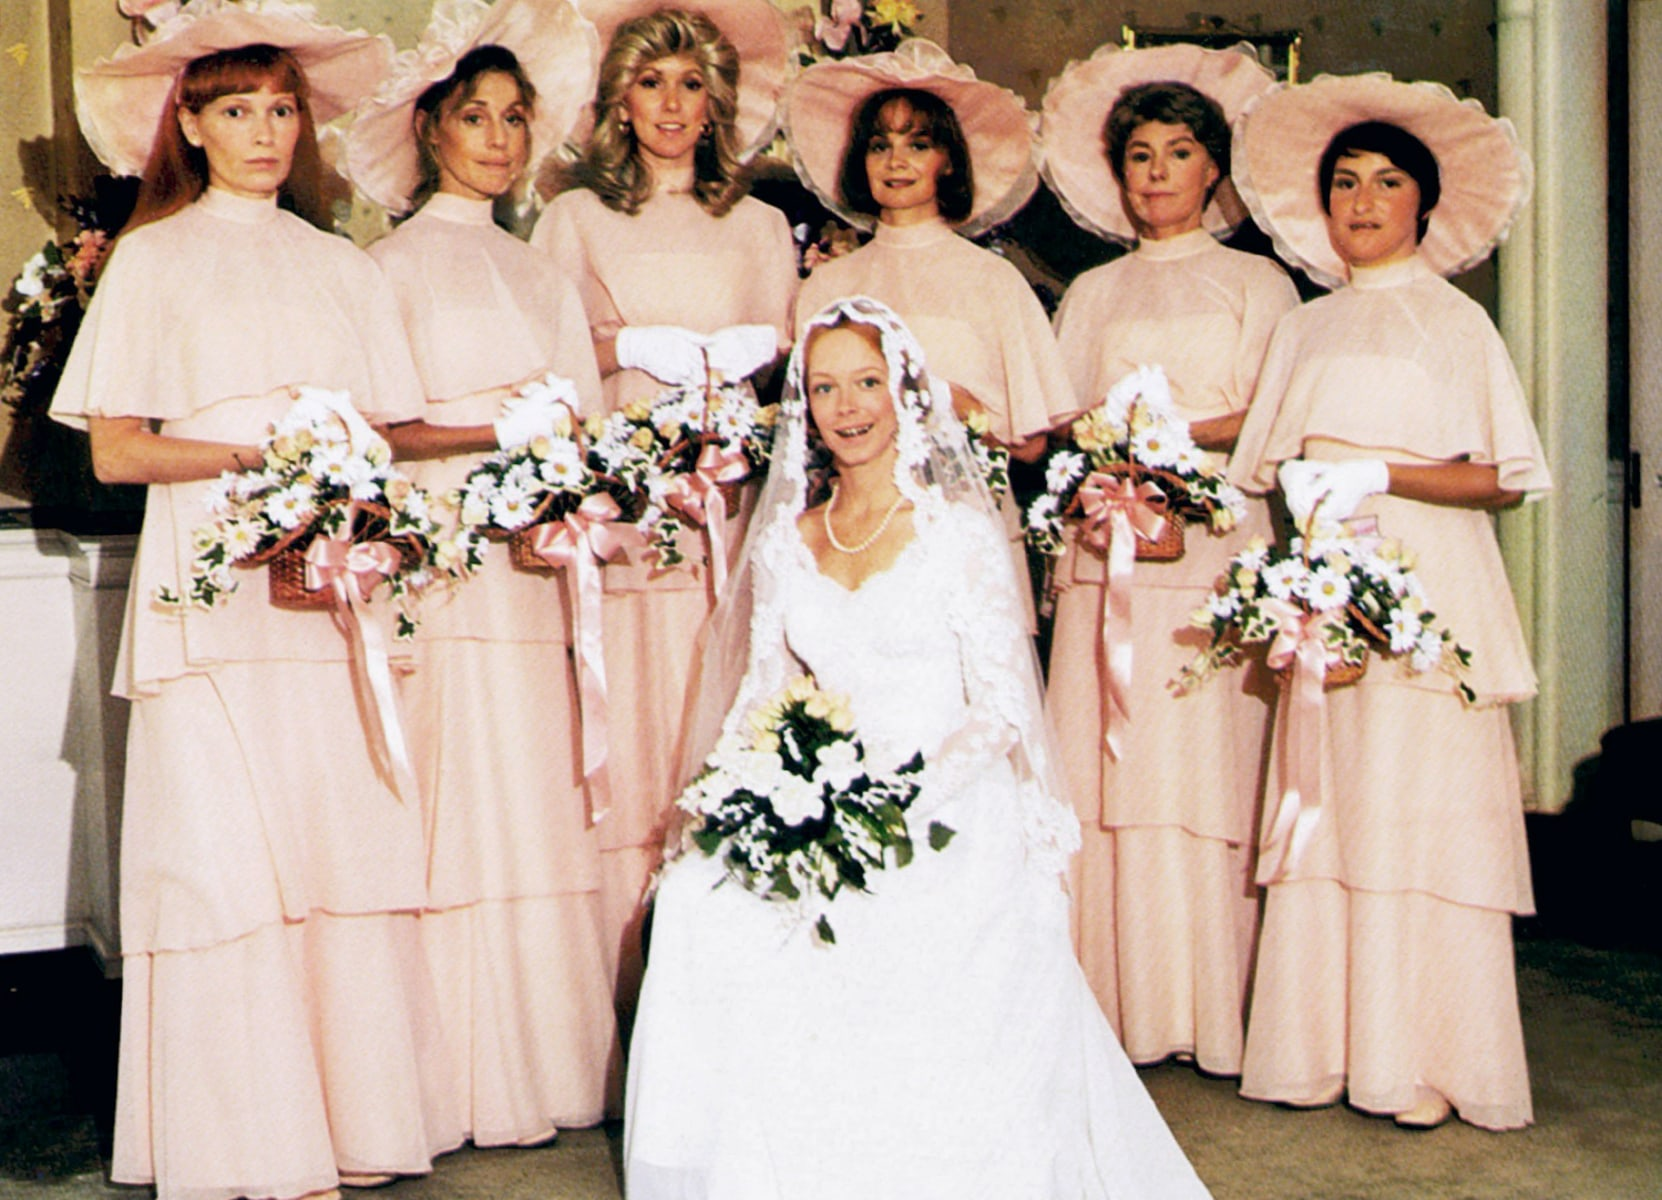 smart tips to survive wedding season com image a wedding amy stryker seated standing mia farrow